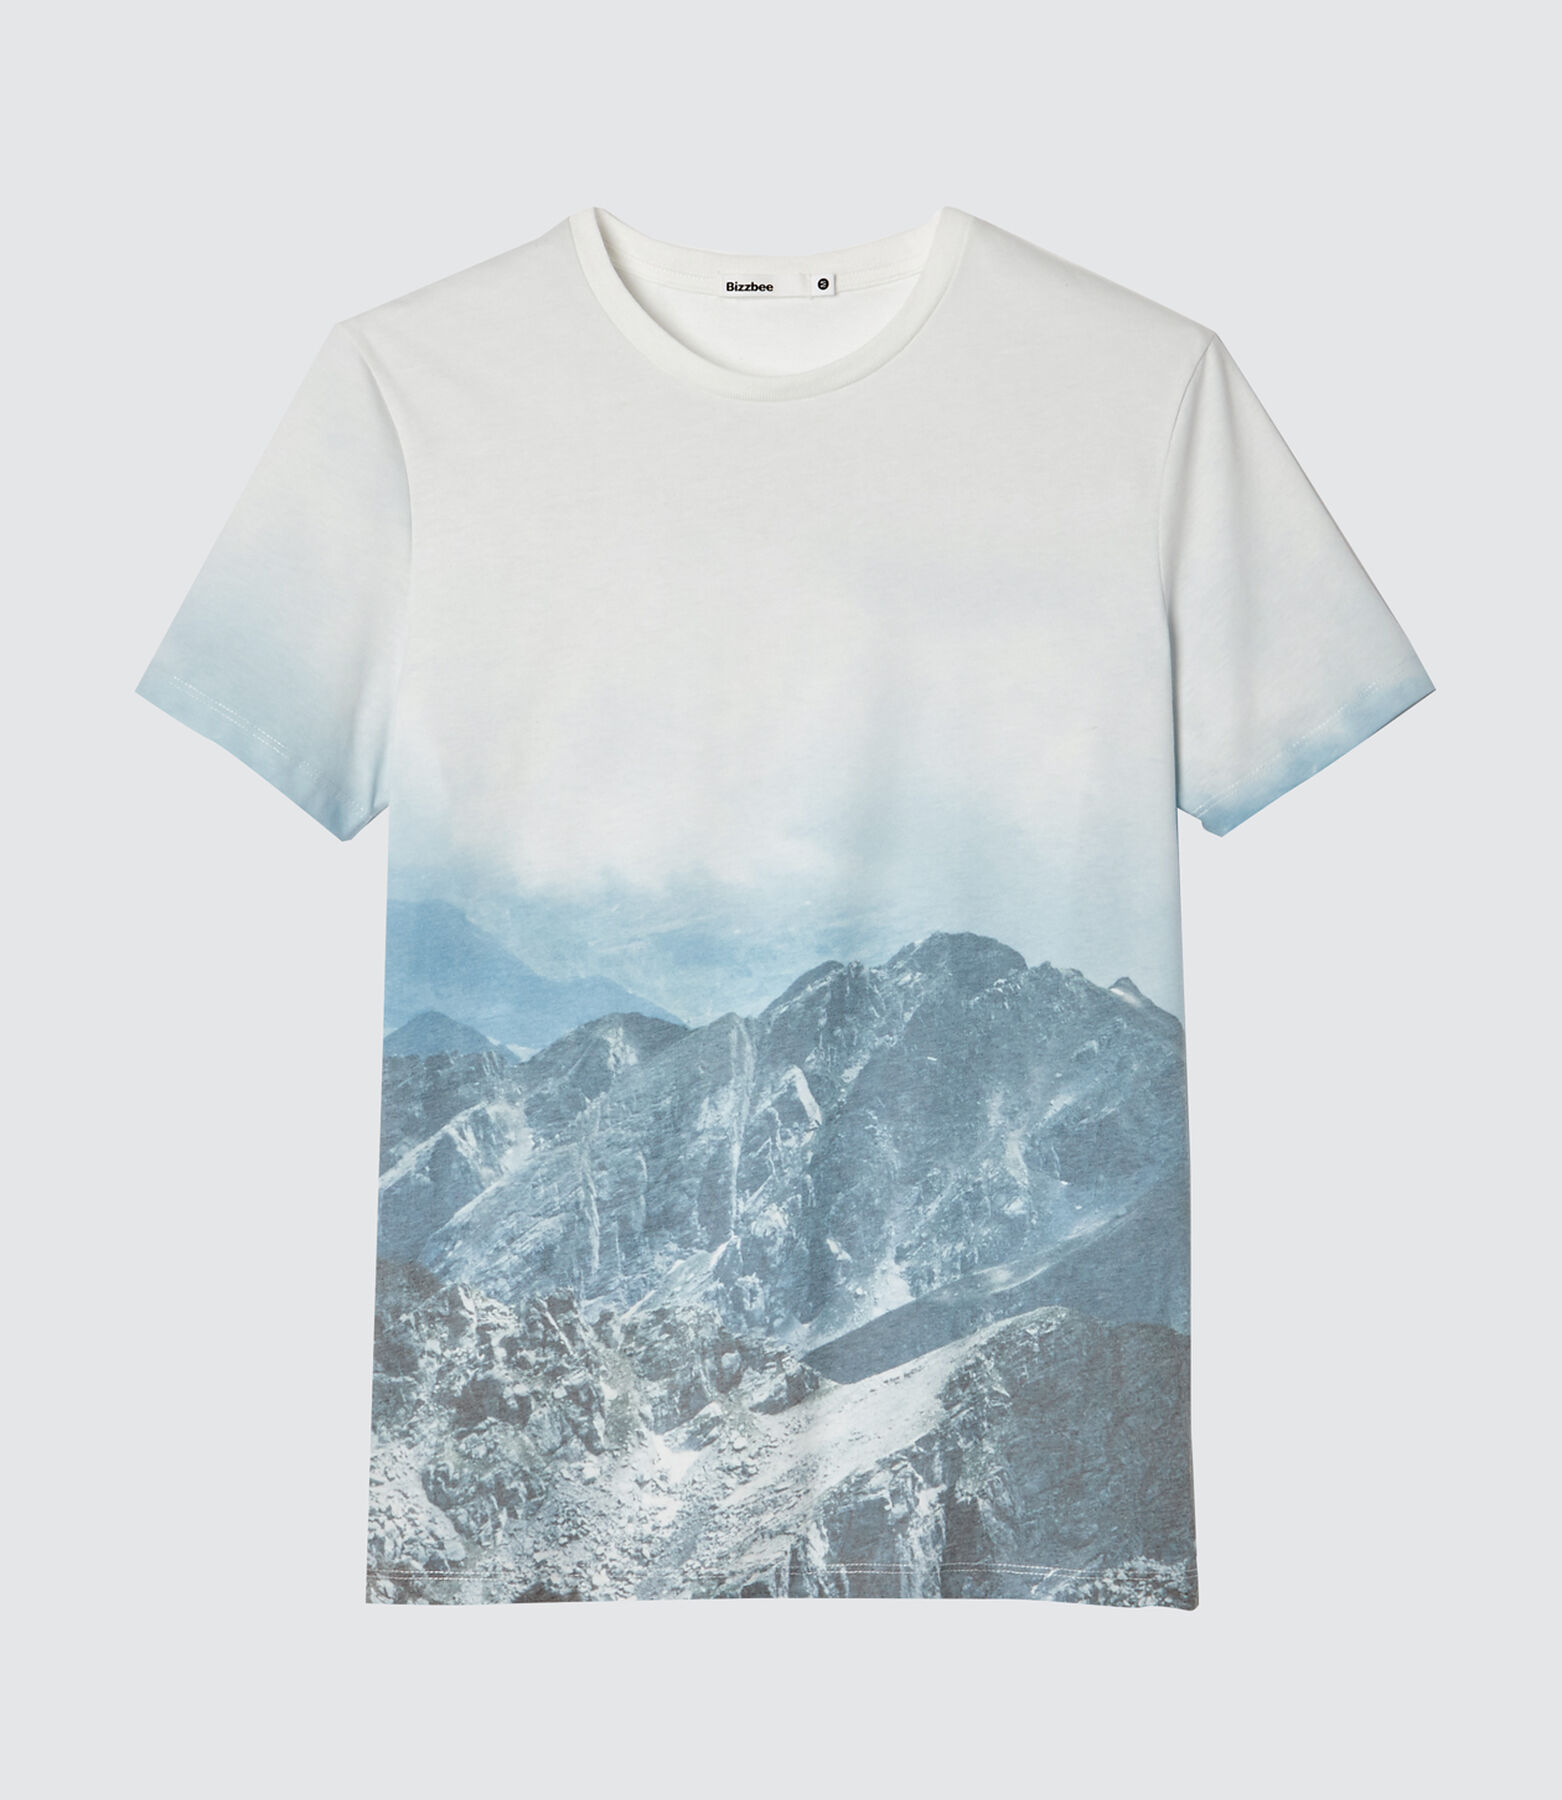 T-shirt sublimation montagne